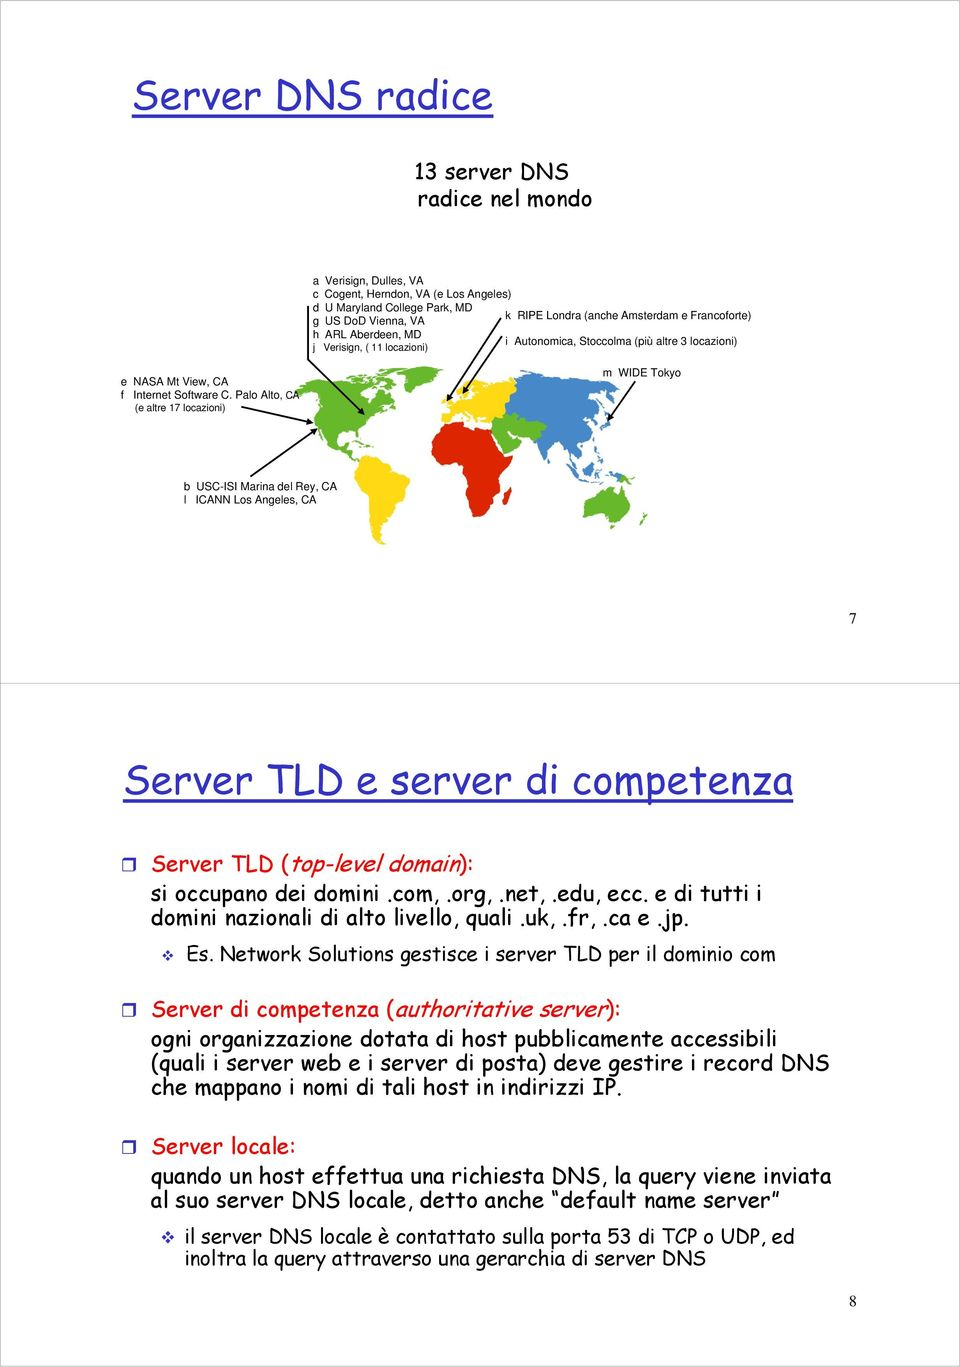 Palo Alto, CA (e altre 17 locazioni) m WIDE Tokyo b USC-ISI Marina del Rey, CA l ICANN Los Angeles, CA 7 Server TLD e server di competenza Server TLD (top-level domain): si occupano dei domini.com,.